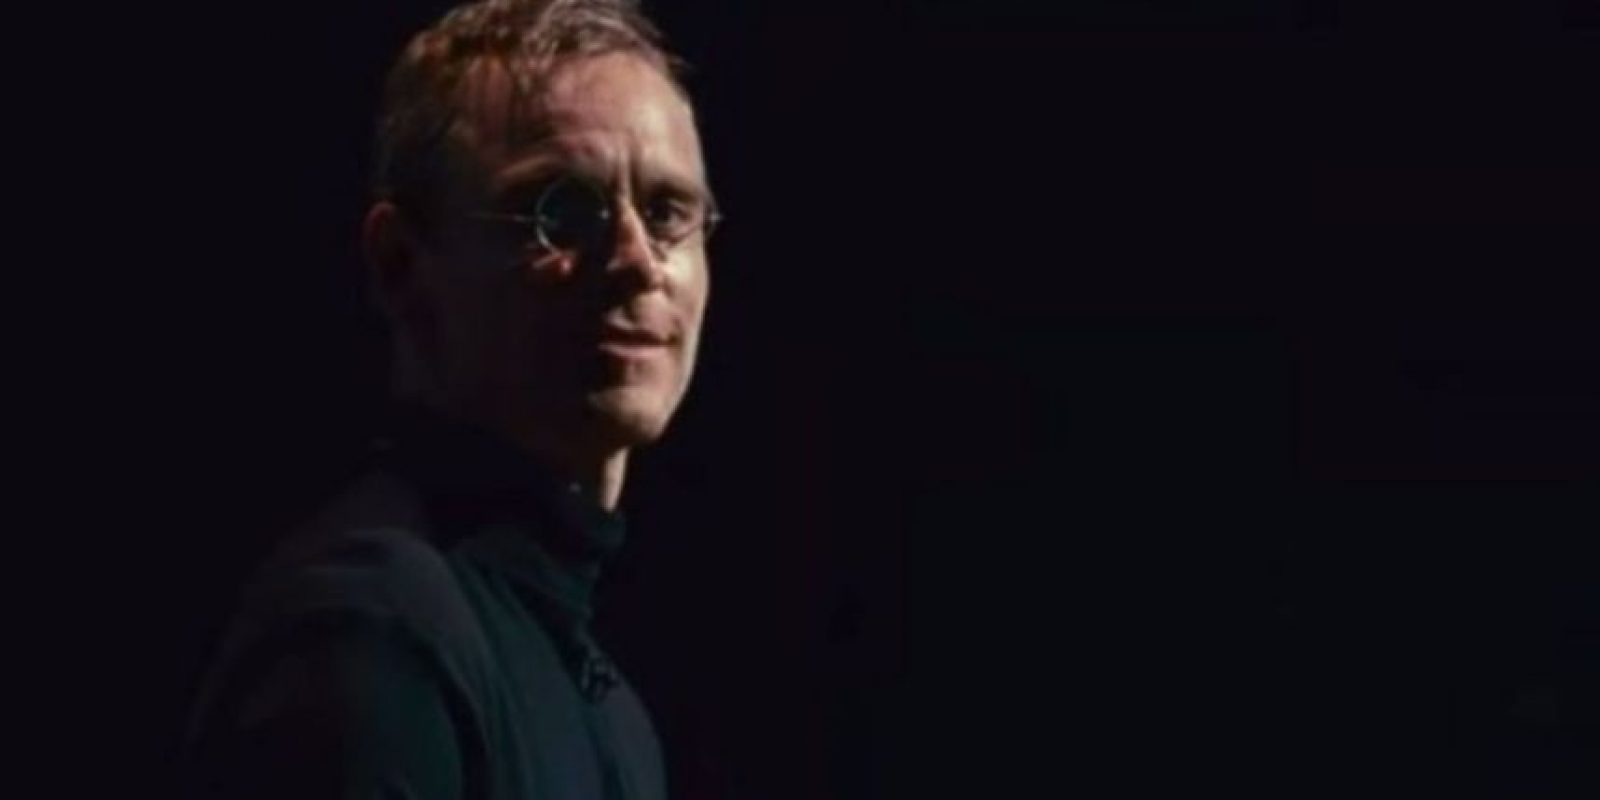 Michael Fassbender interpretará al fundador de Apple. Foto: Universal Pictures